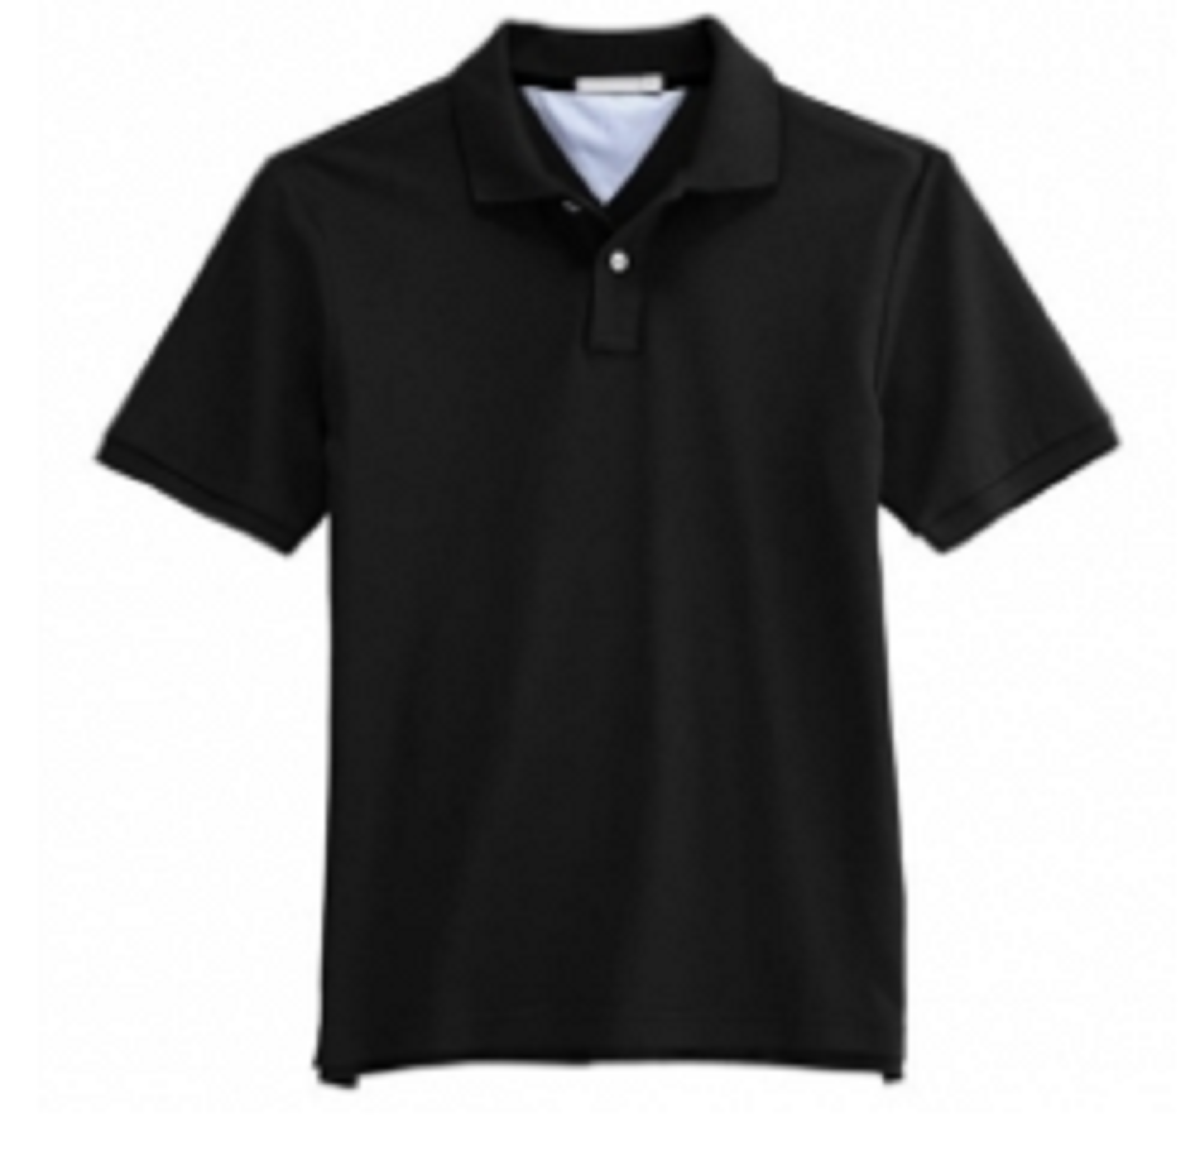 Men's Polo Shirts Black Color Half sleeves Model No TSI­4902